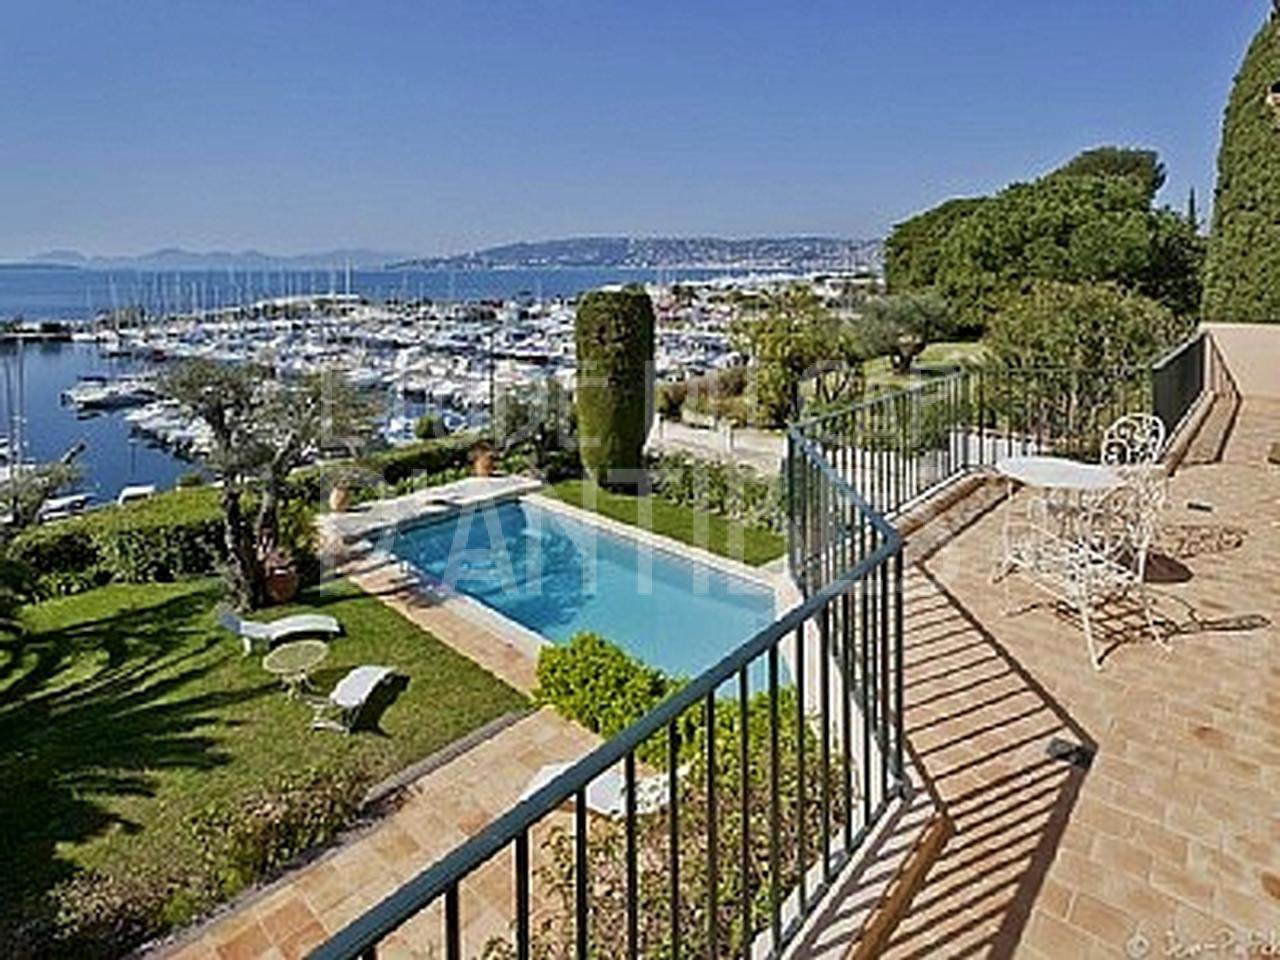 Villa to rent - Cap d'Antibes